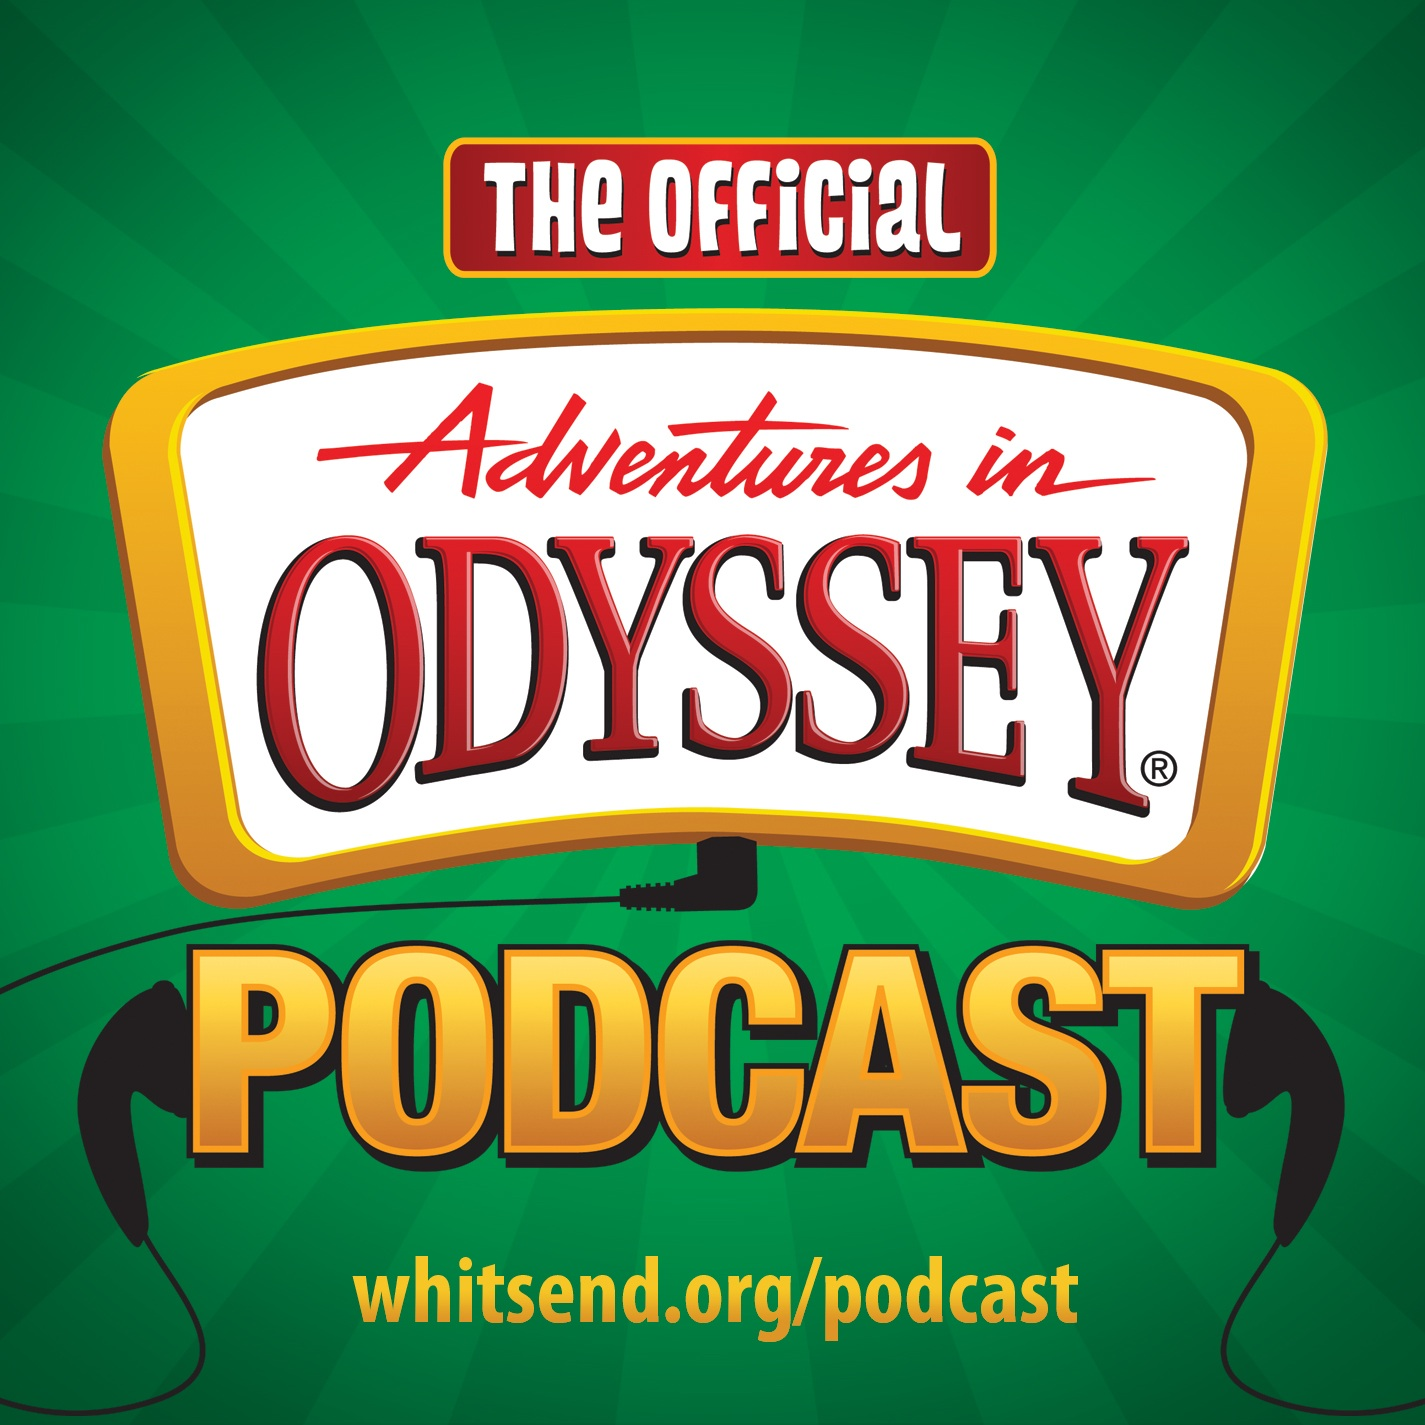 The Official Adventures in Odyssey Podcast